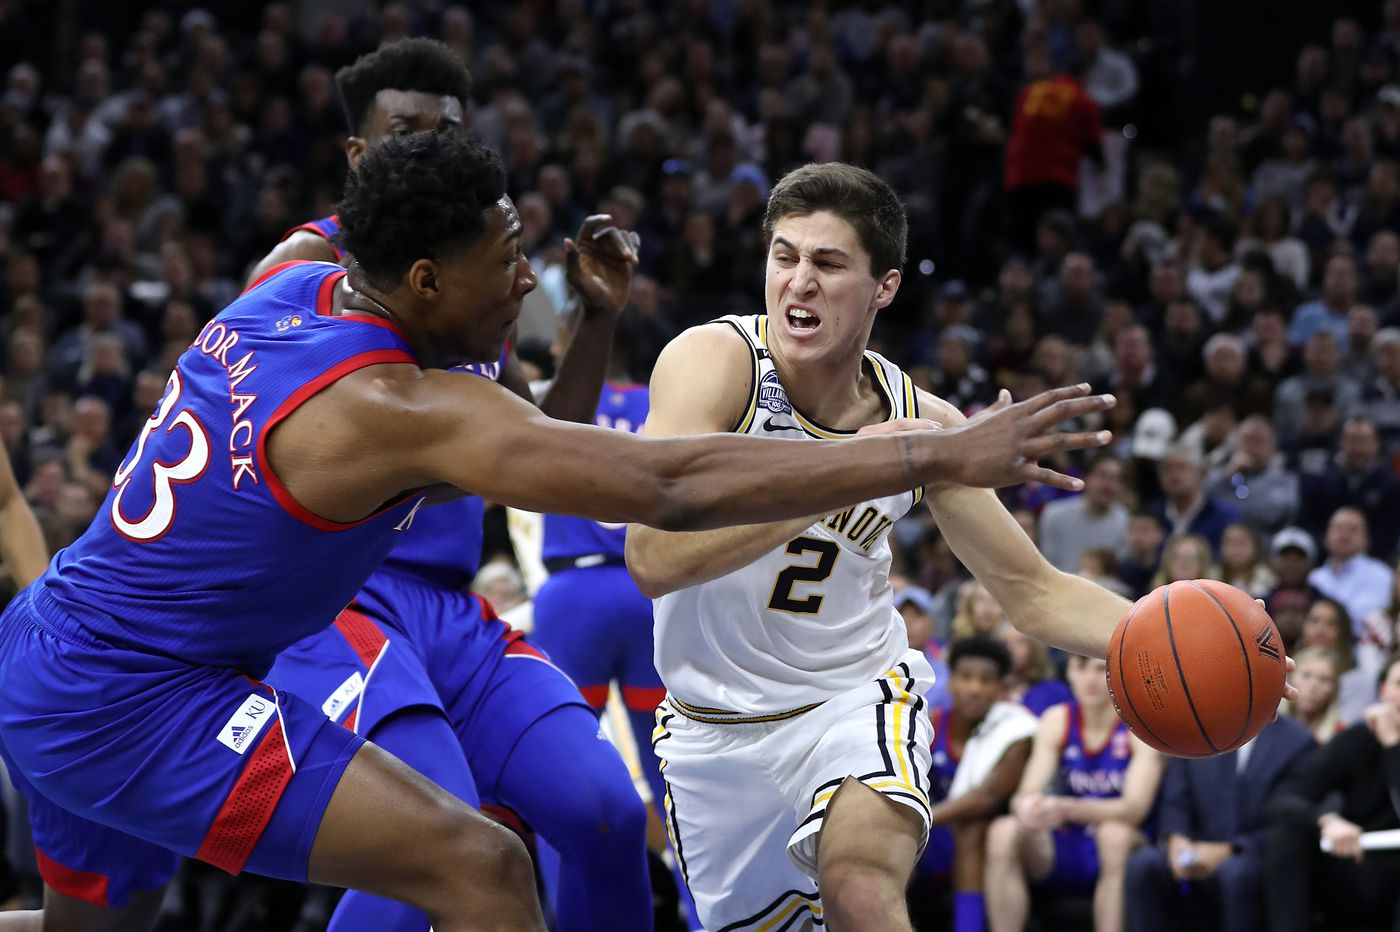 If you were watching, you saw Collin Gillespie's huge impact for Villanova in upset of Kansas